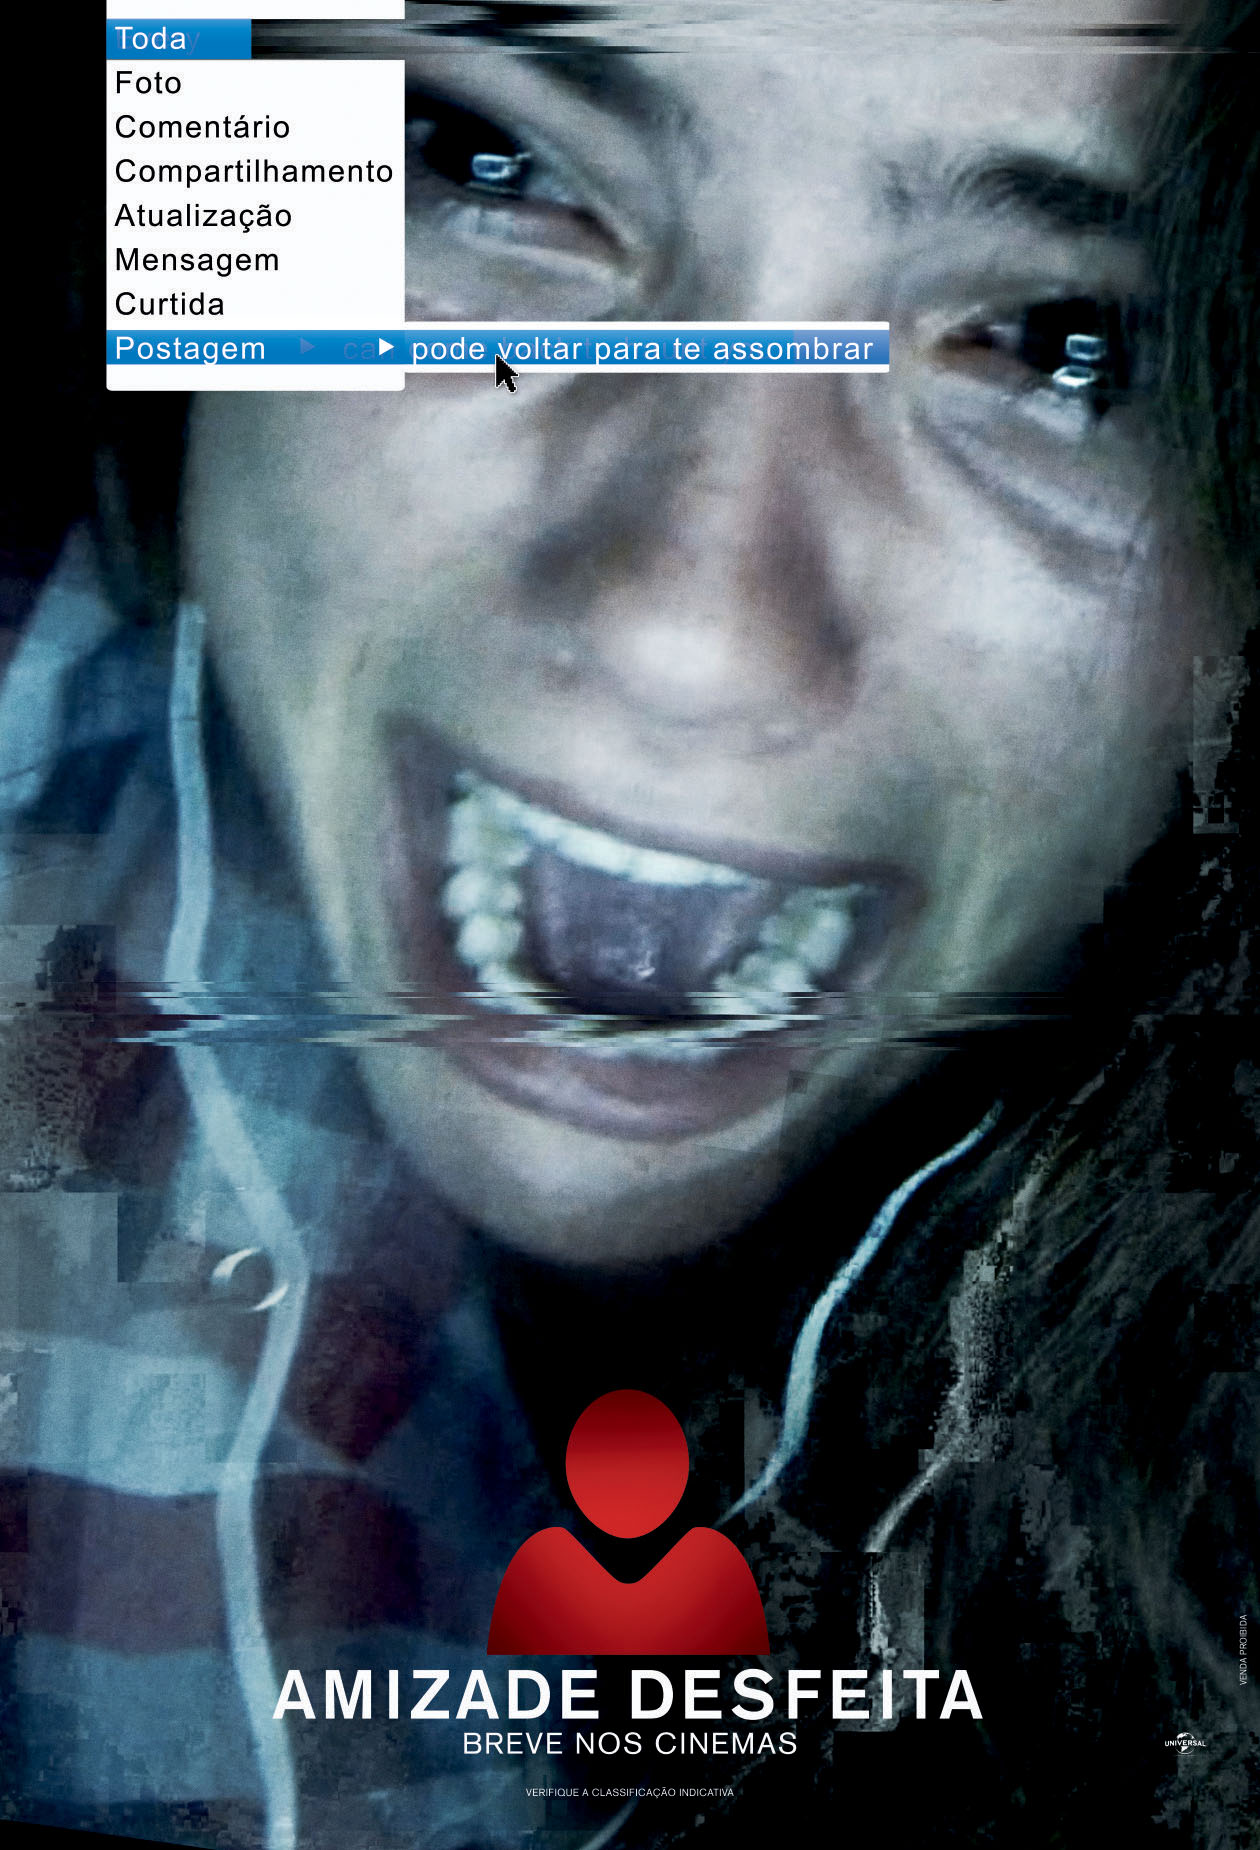 Unfriended-07Setembro2015